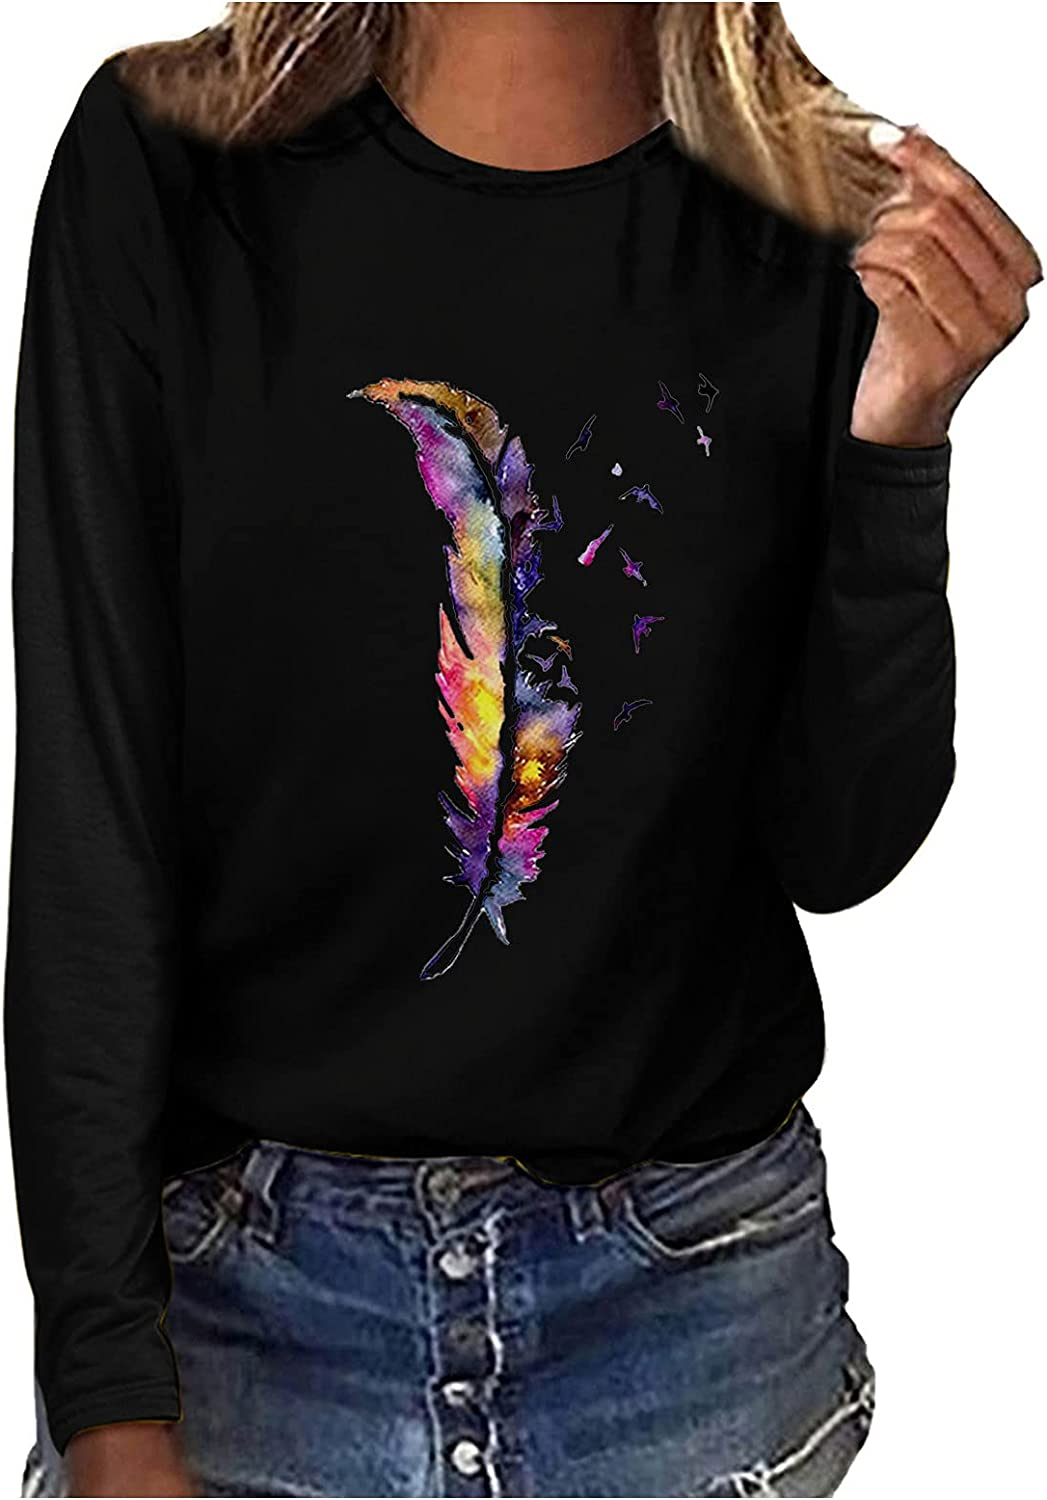 FABIURT Cute Sweatshirts for Women, Womens Casual Feather Printed Blouses Crewneck Graphic Long Sleeve Pullover Sweaters